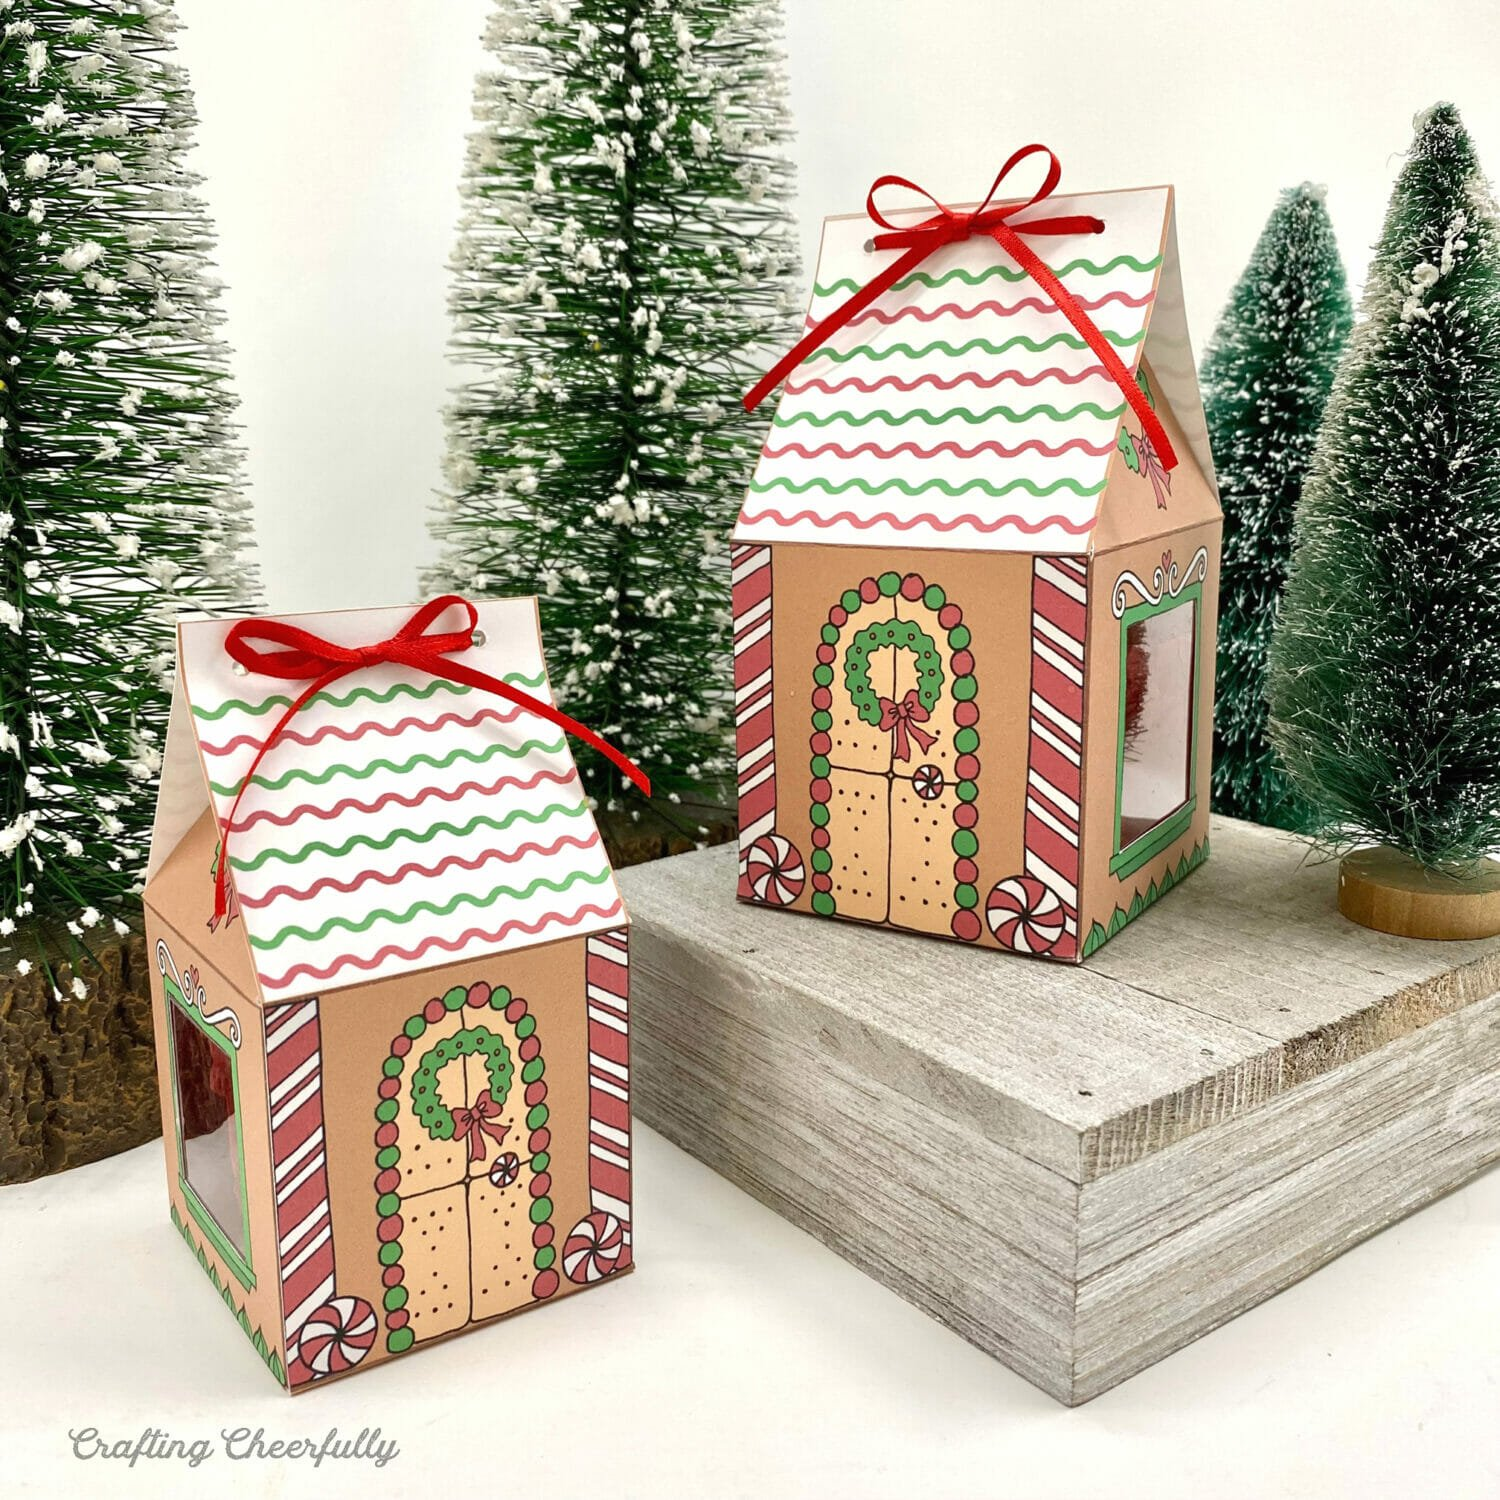 Printable Christmas gingerbread house boxes sit next to Christmas trees.